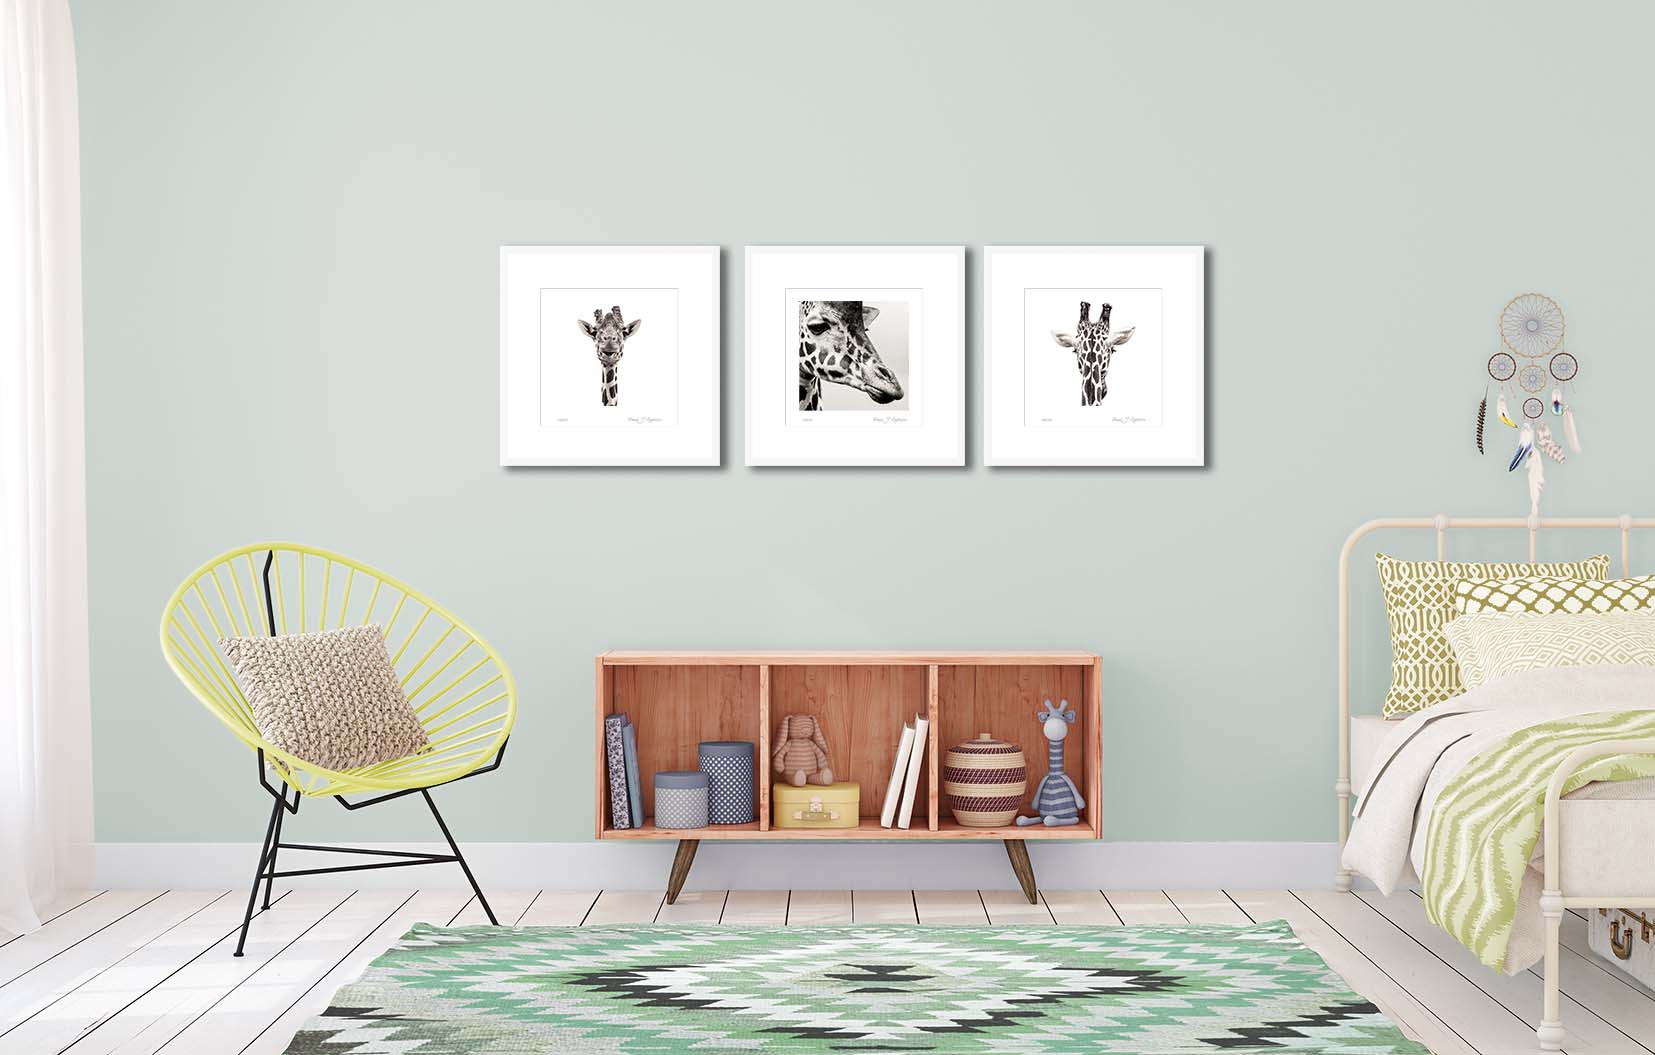 Three black and white photograhic portraits of a giraffe. Limited edtion prints by fine art photographer Paul Coghlin.